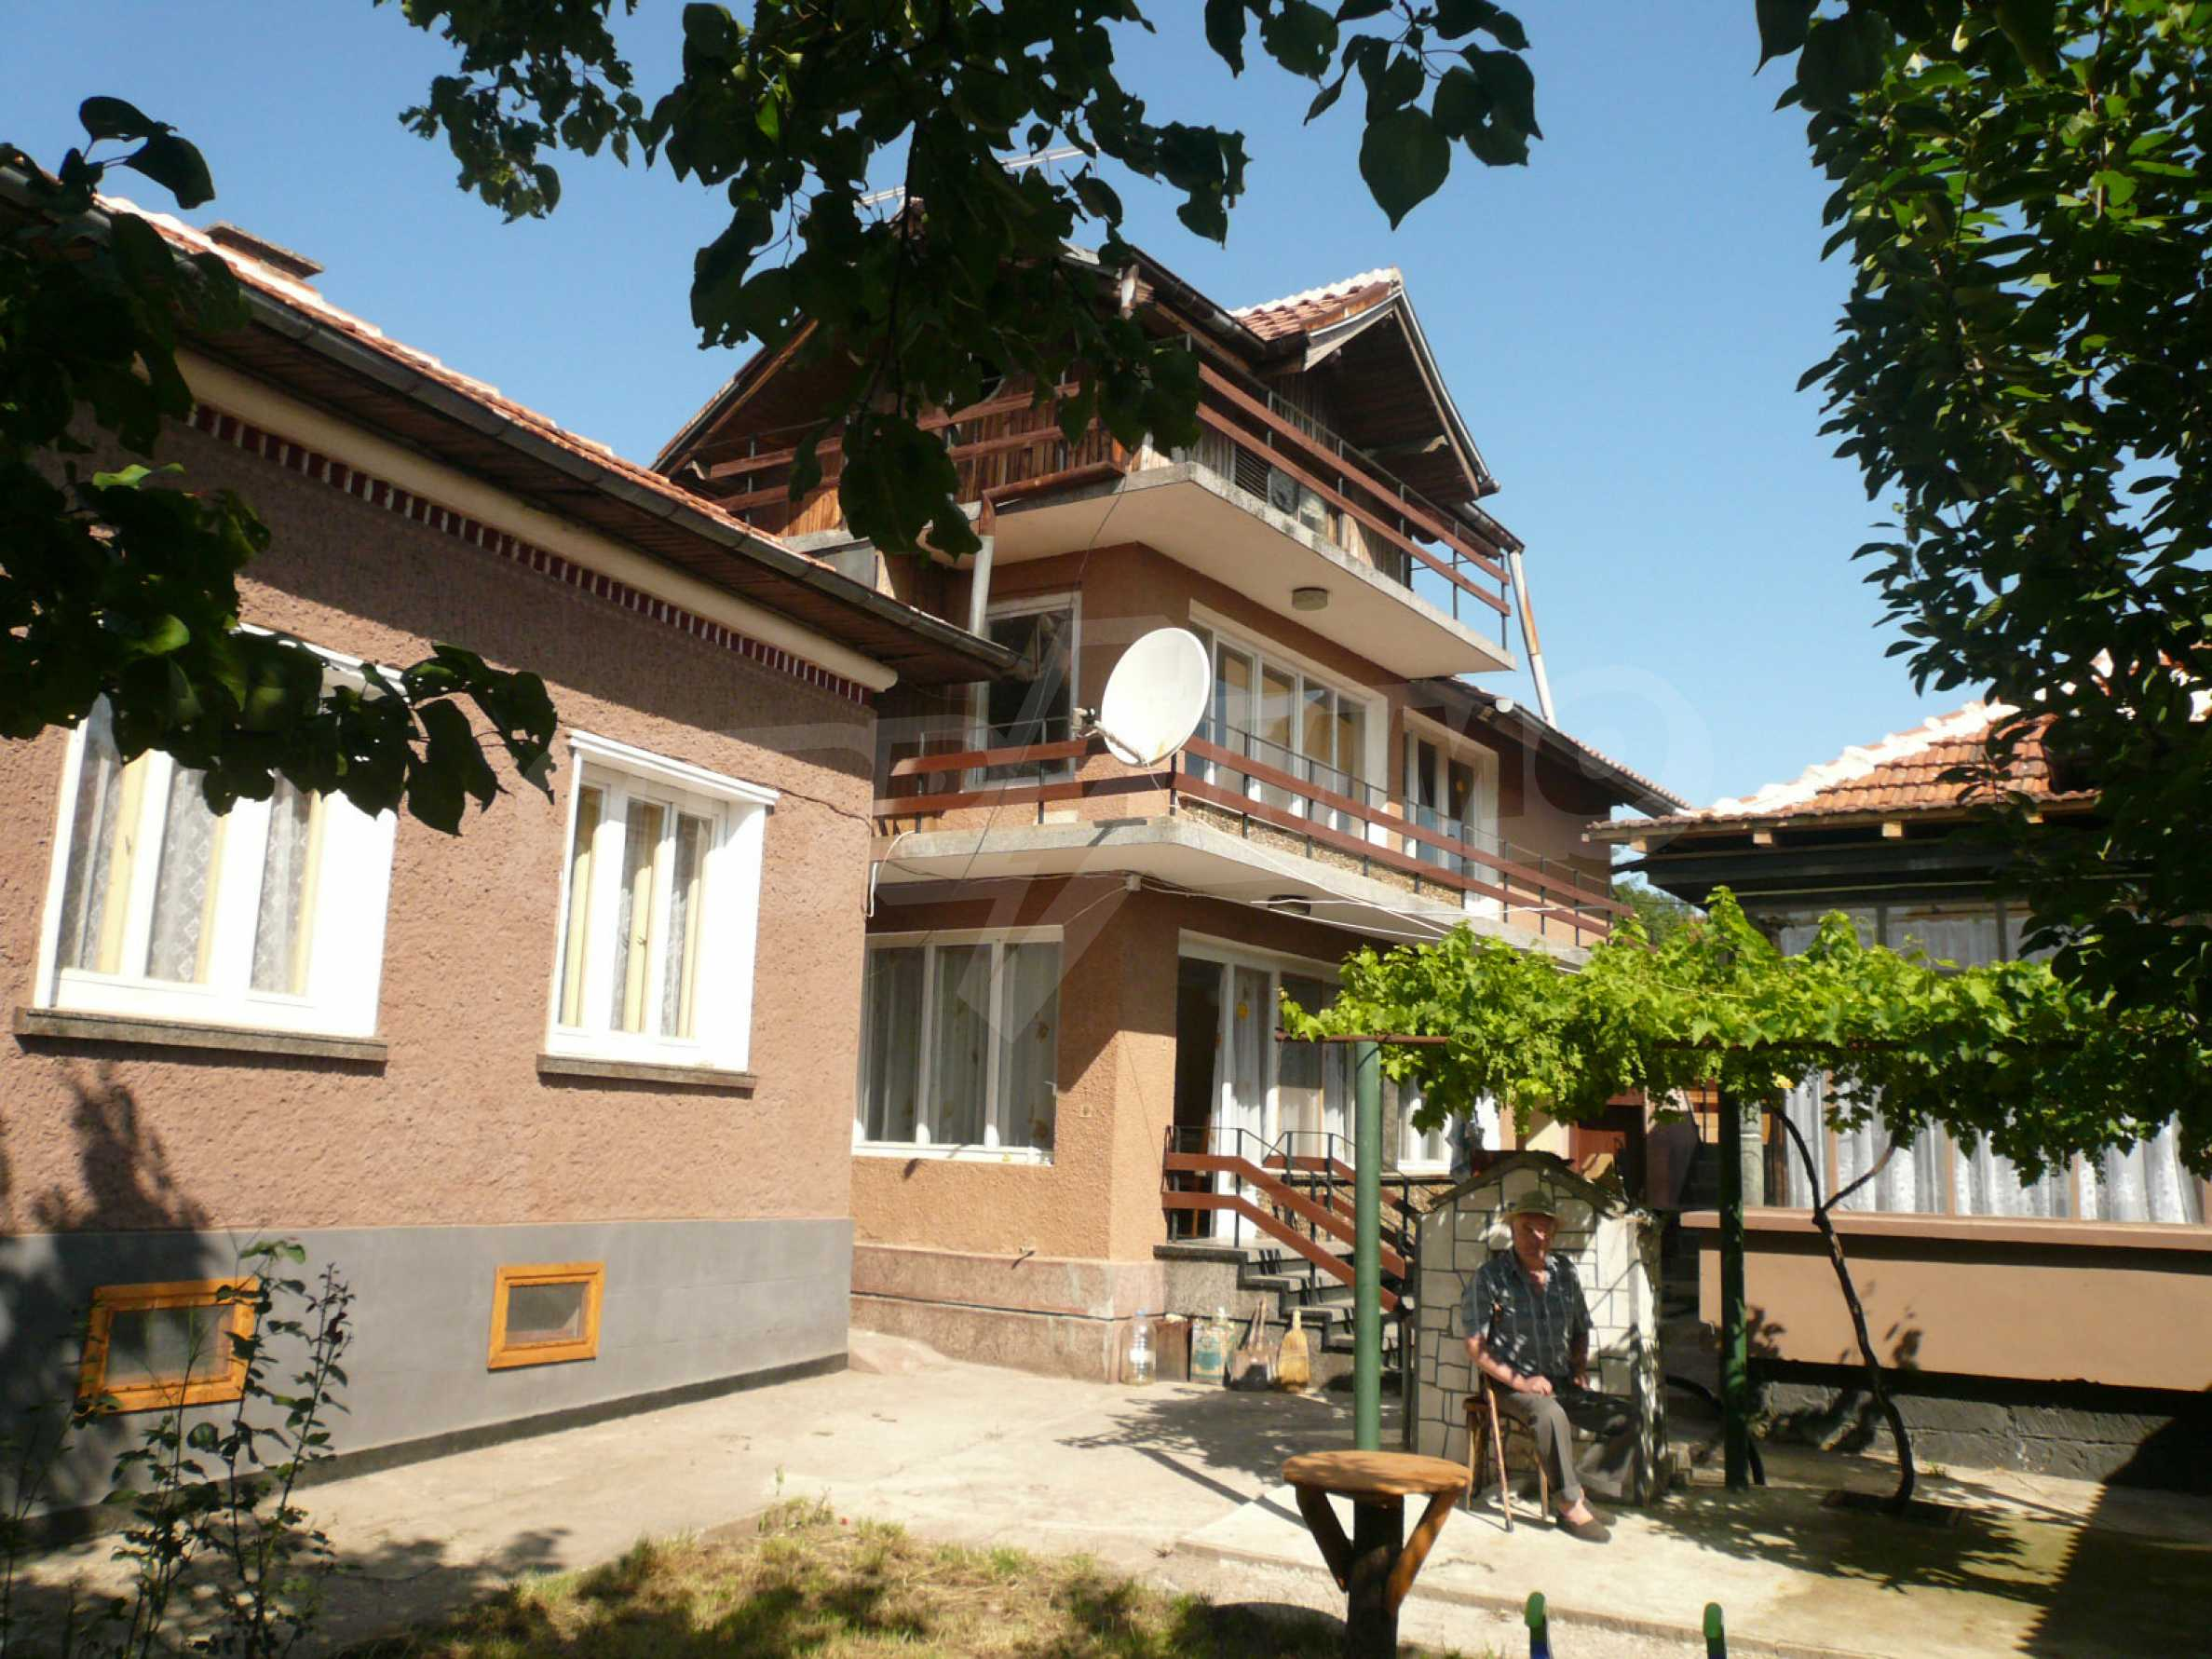 Rural houses with garden 12 km from Vidin 1